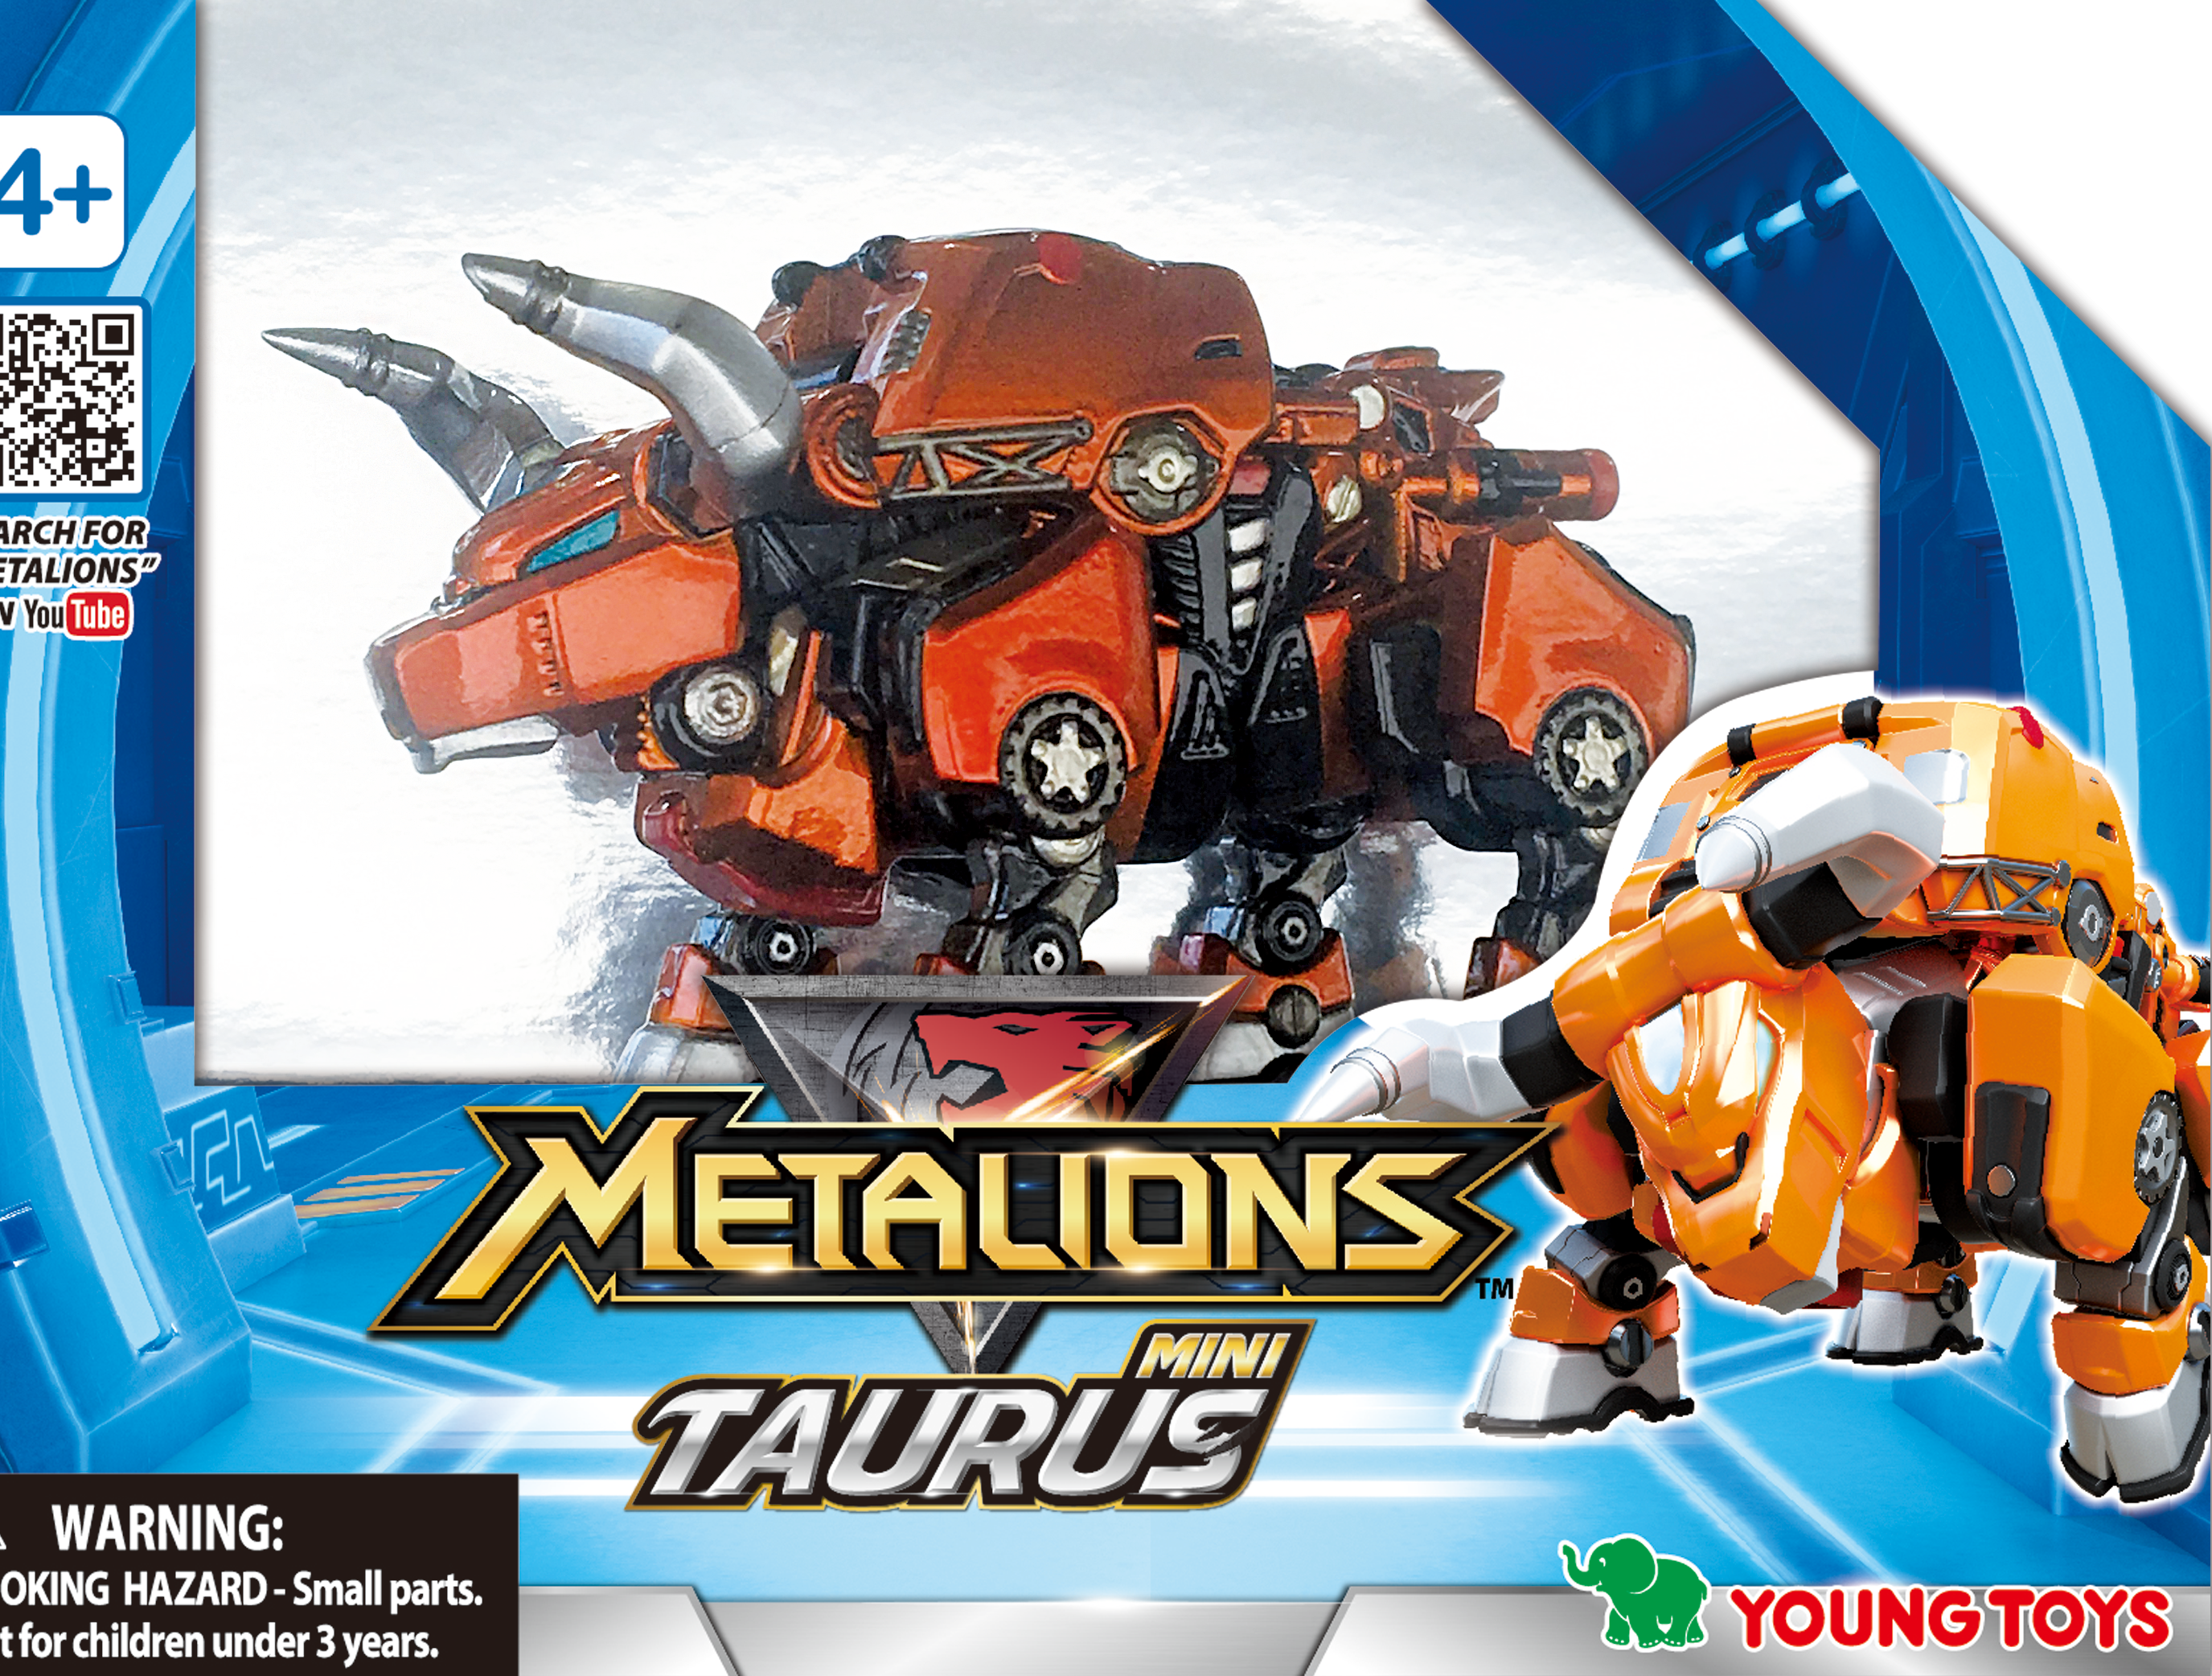 YOUNG TOYS METALIONS Mini Taurus Action Figure